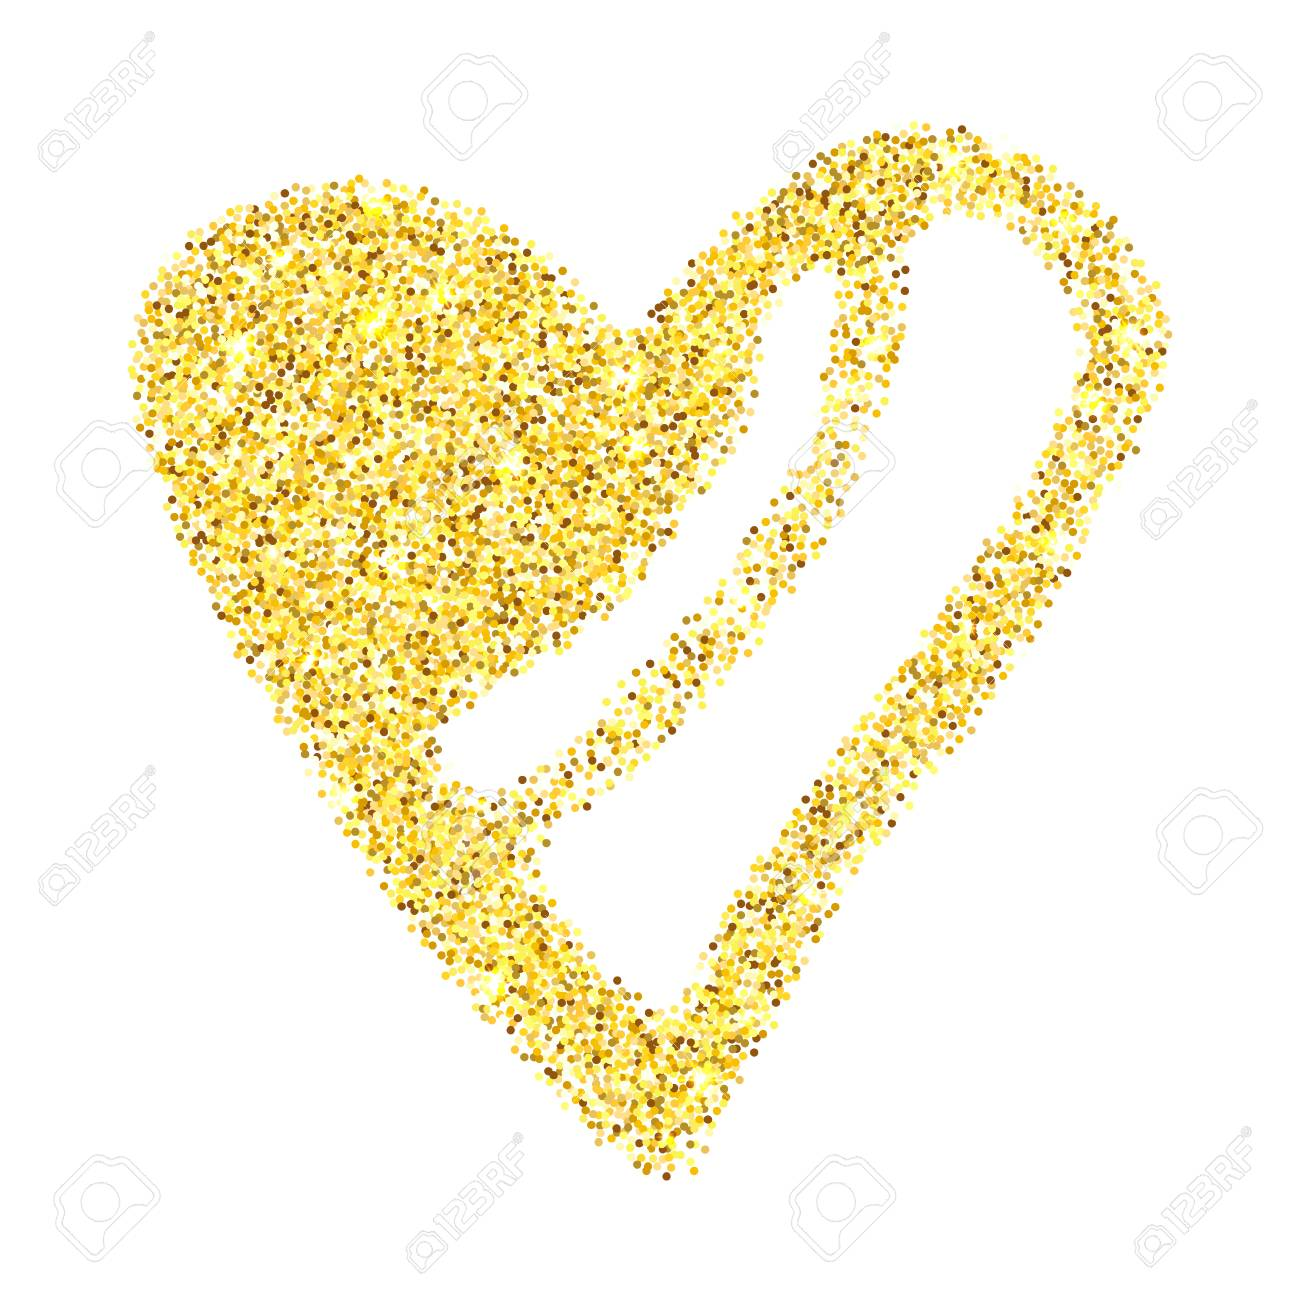 Gold glitter heart isolated over white background. Happy Valentines Day golden glamour design element. - 125130688